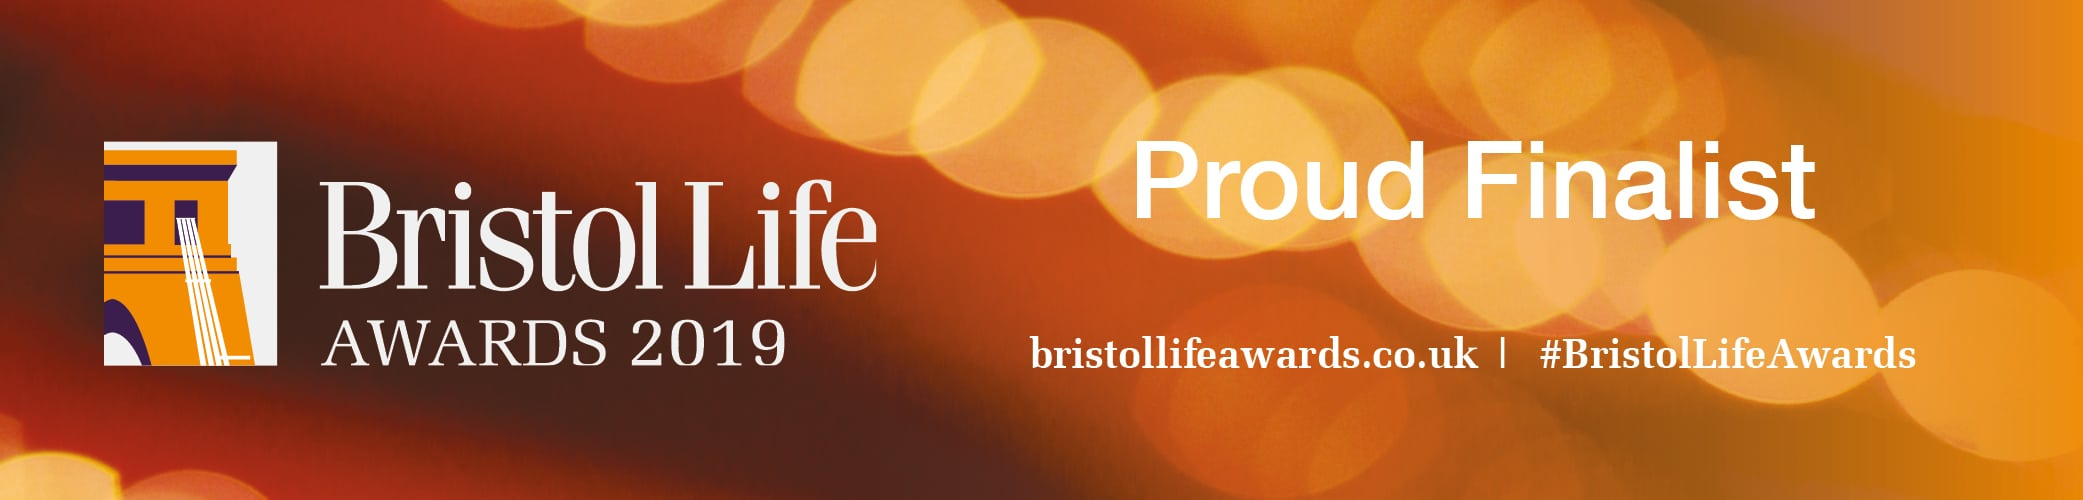 Proud finalist of the Bristol Life Awards 2019